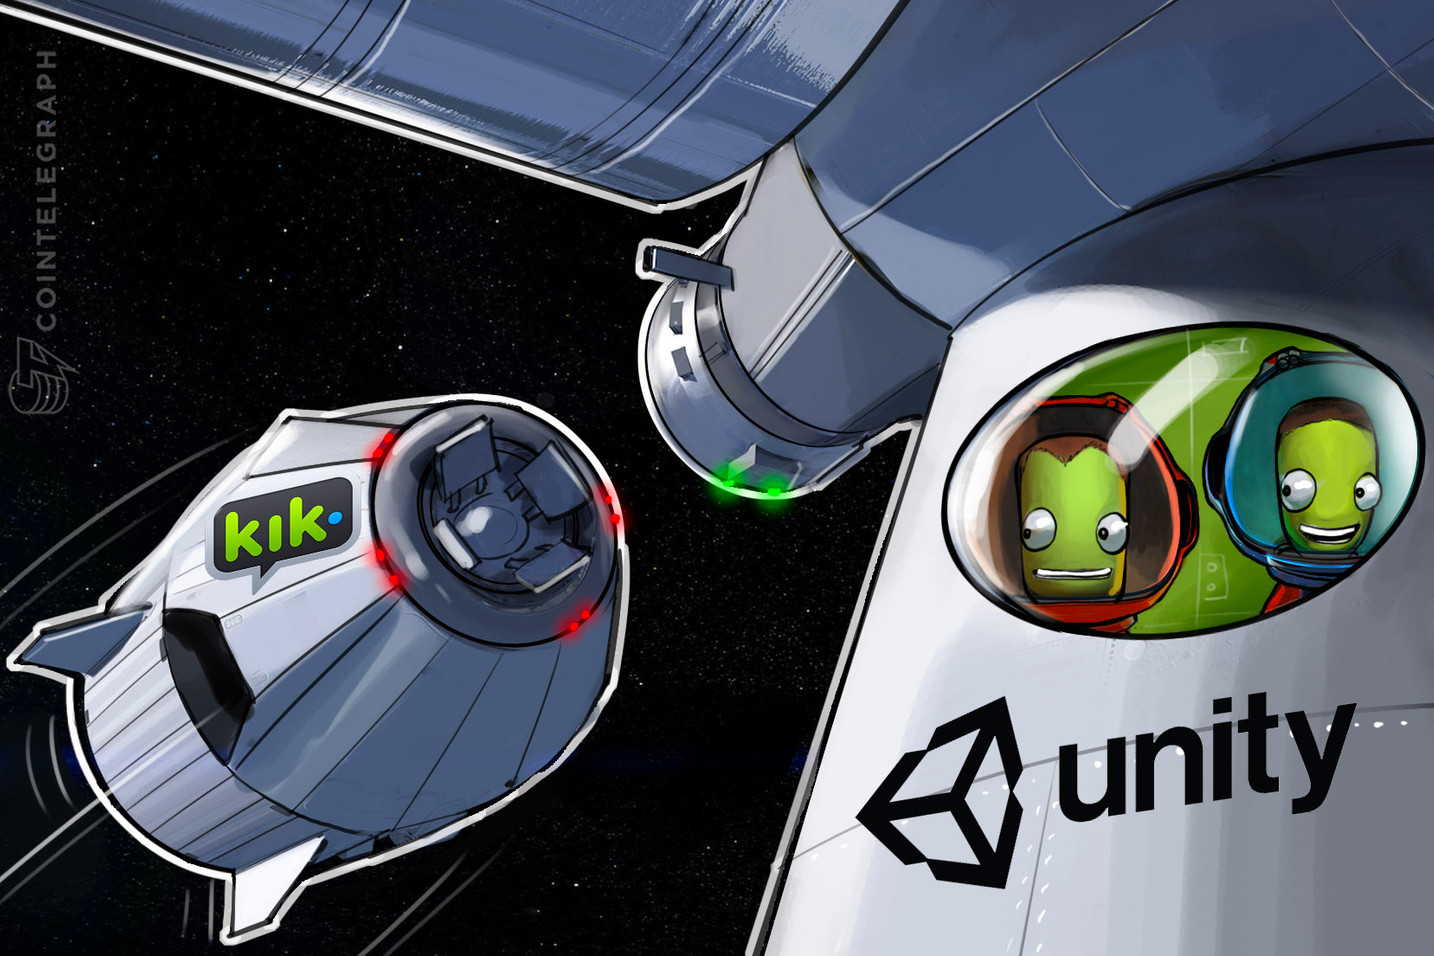 Kik App To Partner With Unity Technologies To Spread Token To Mainstream Gaming